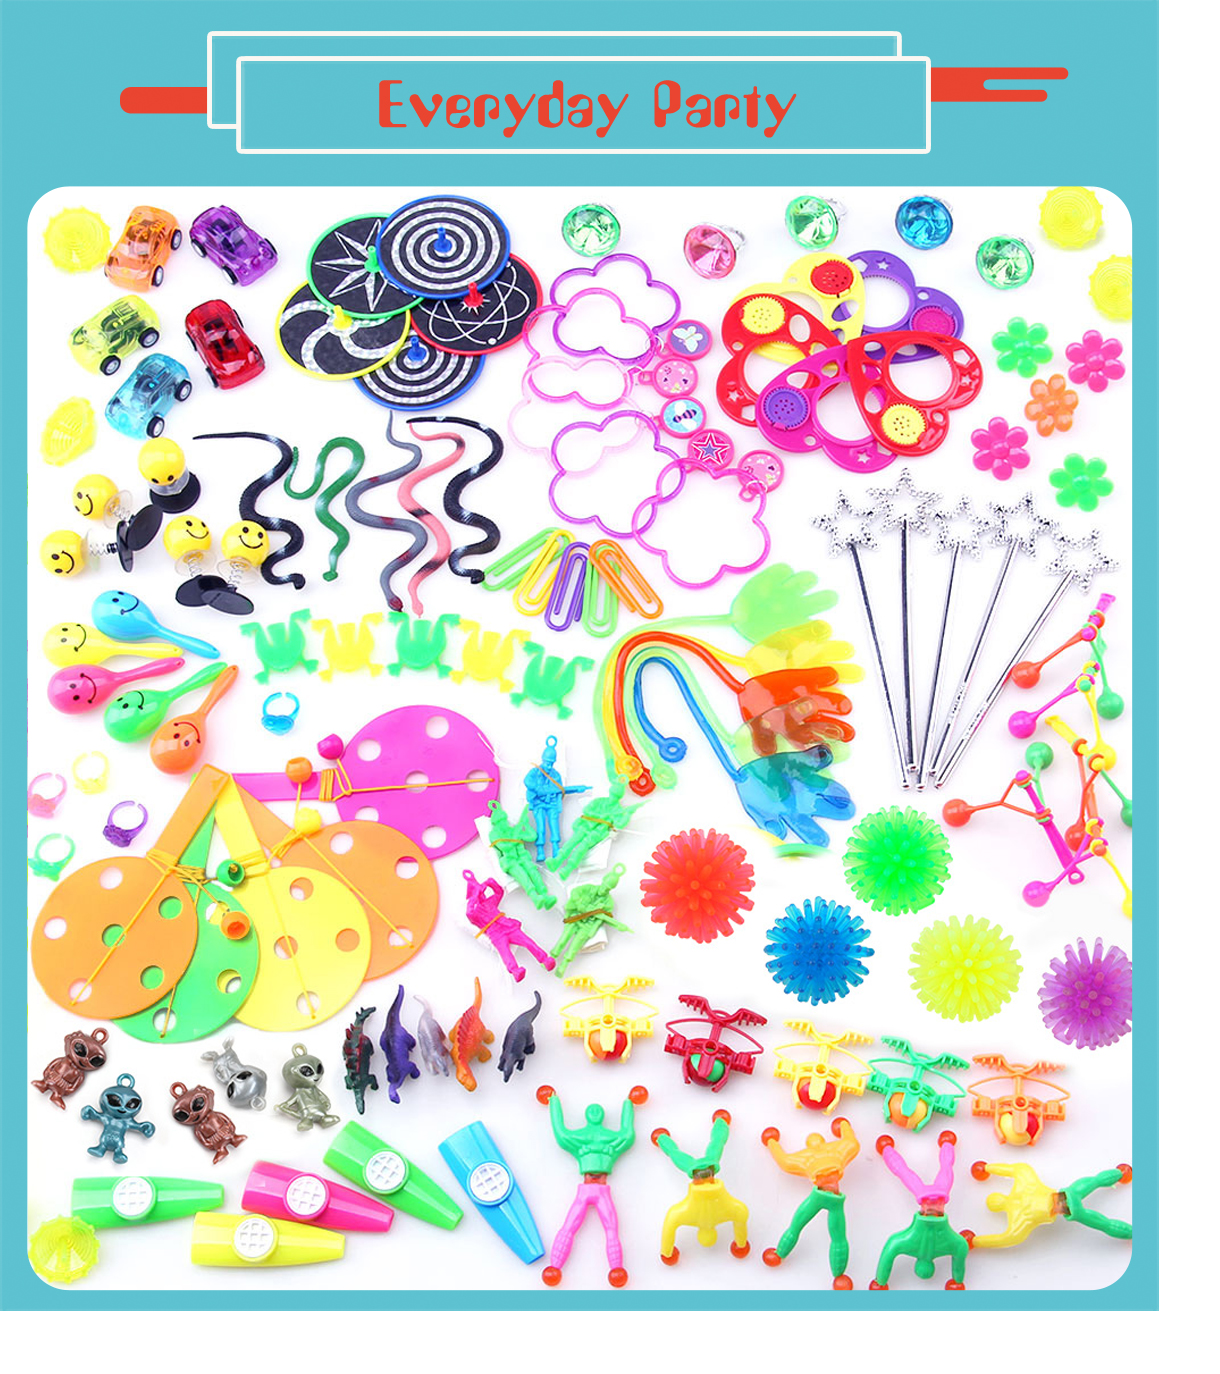 MAGIC RAINBOW BUBBLES BOYS GIRLS GAME TOY PRIZE FAVOR BIRTHDAY PARTY BAG FILLER